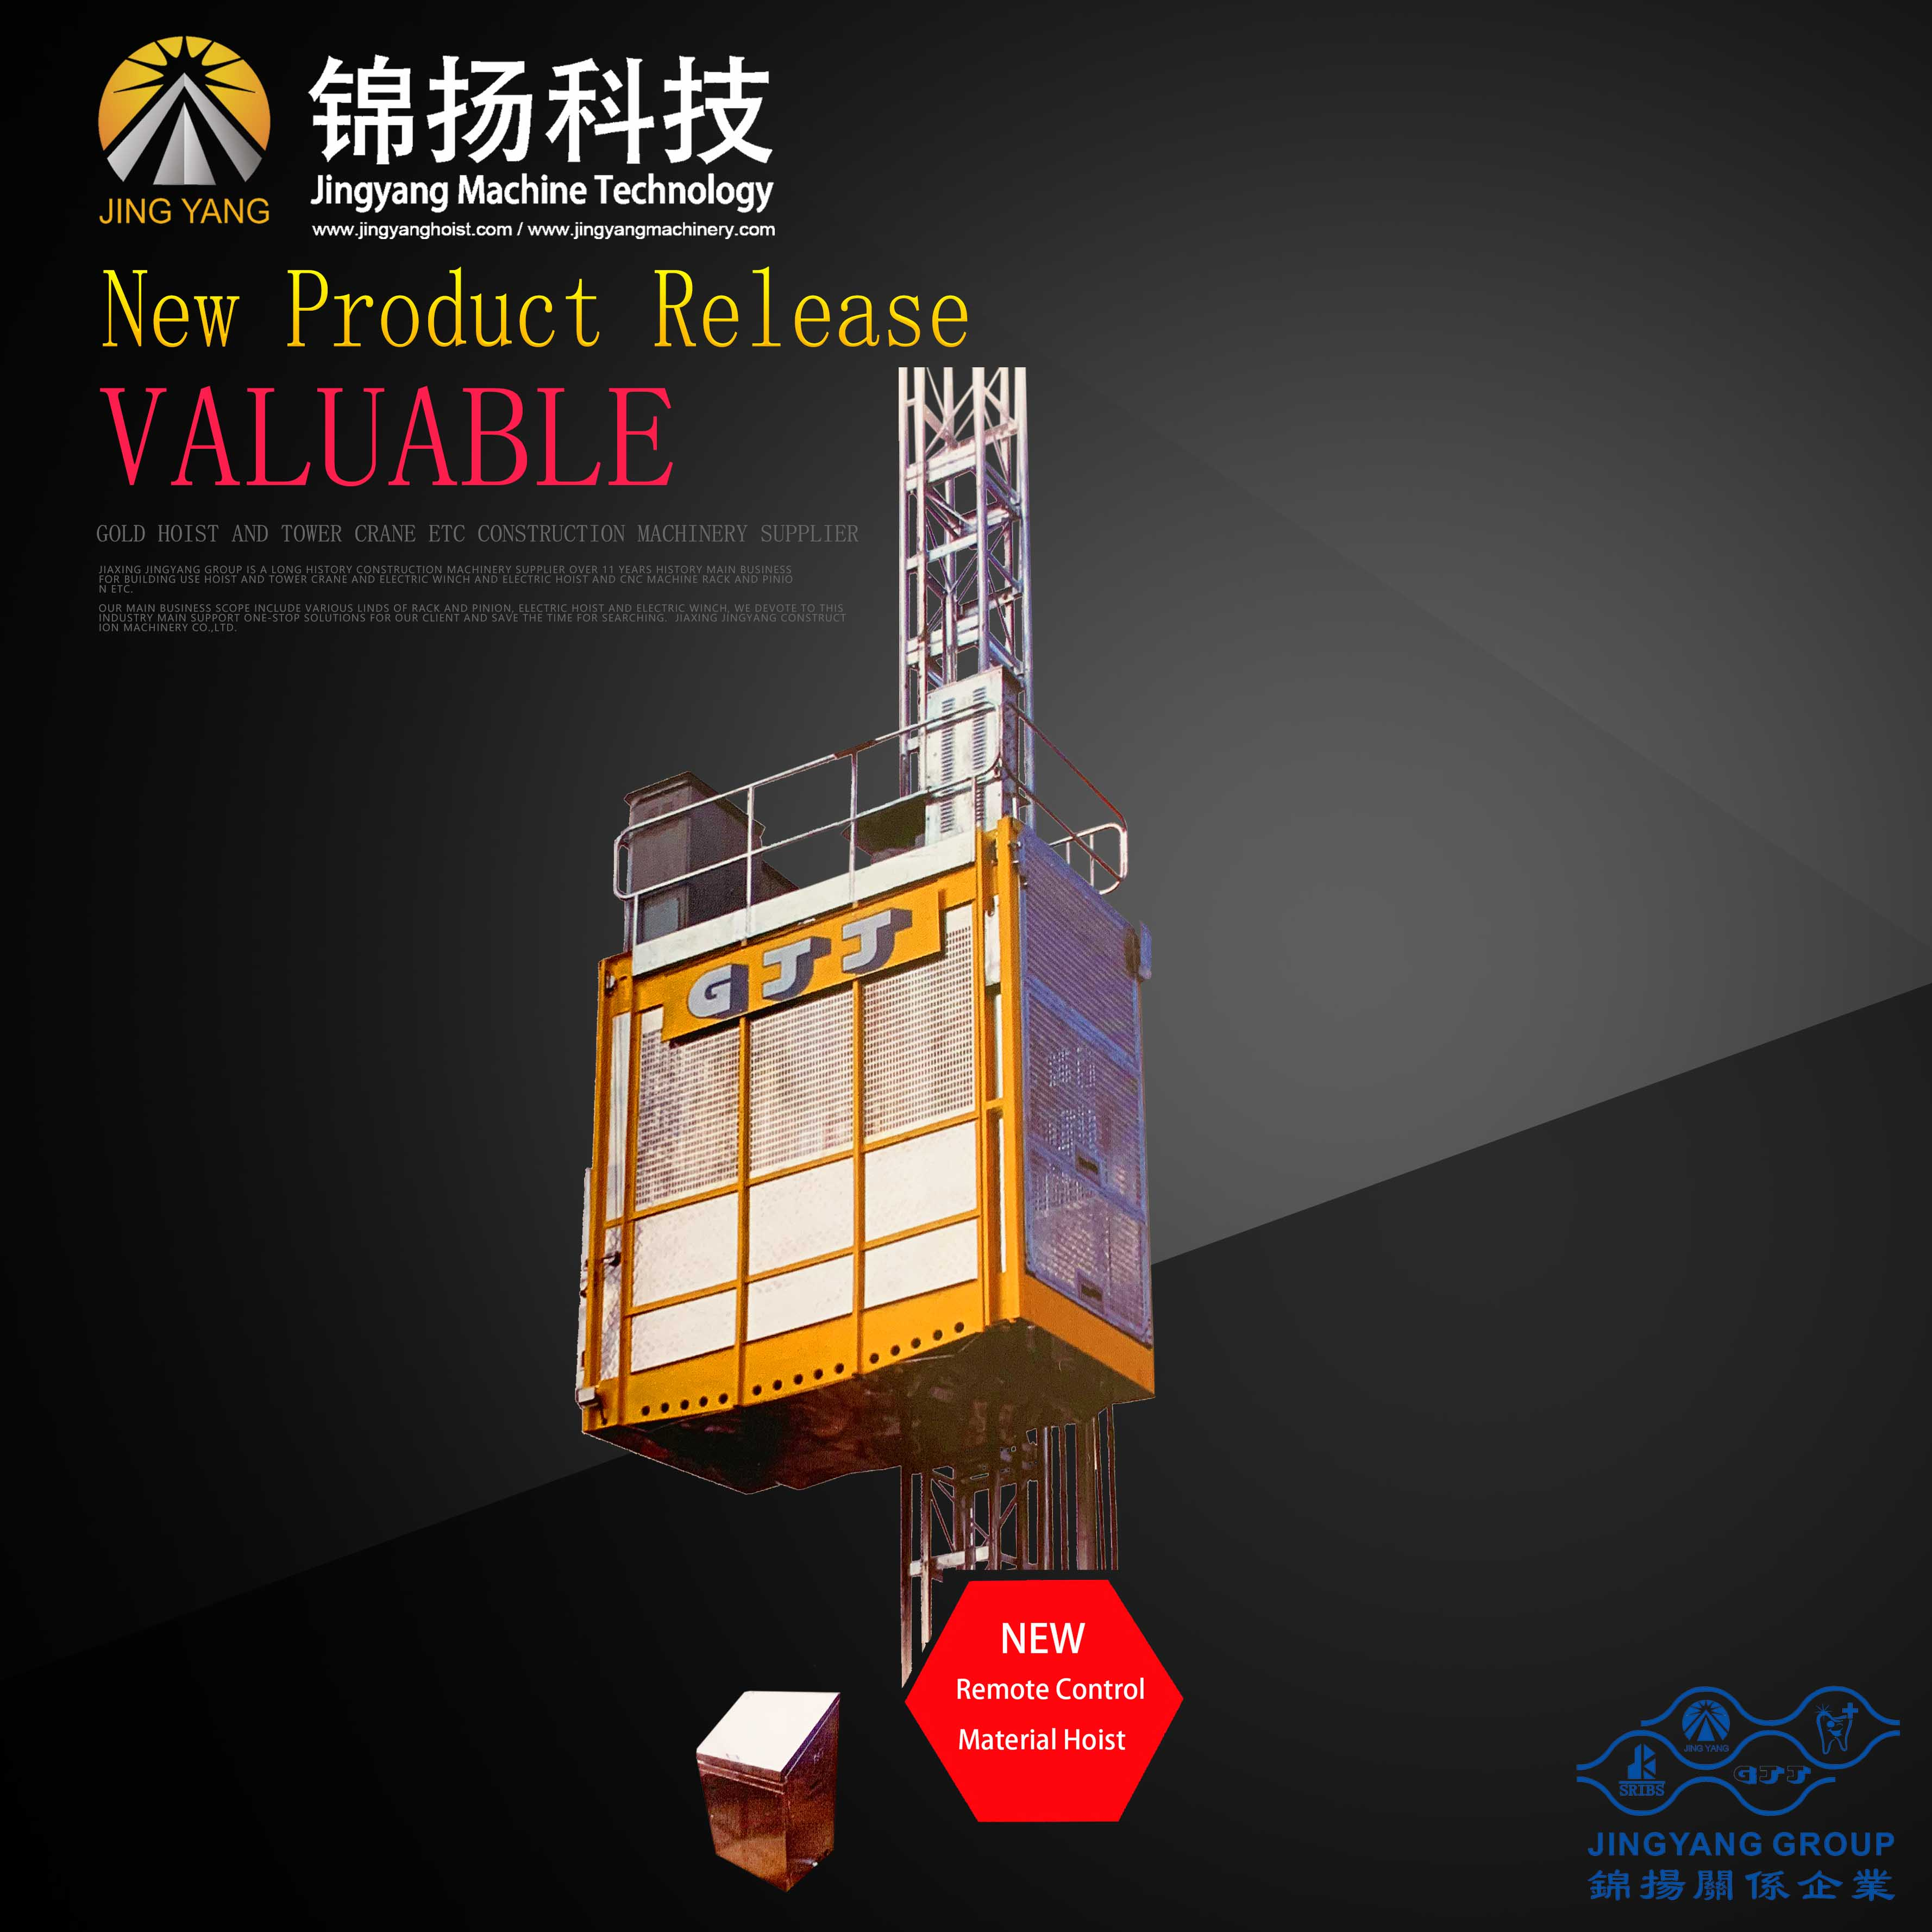 Remote control material hoist Featured Image